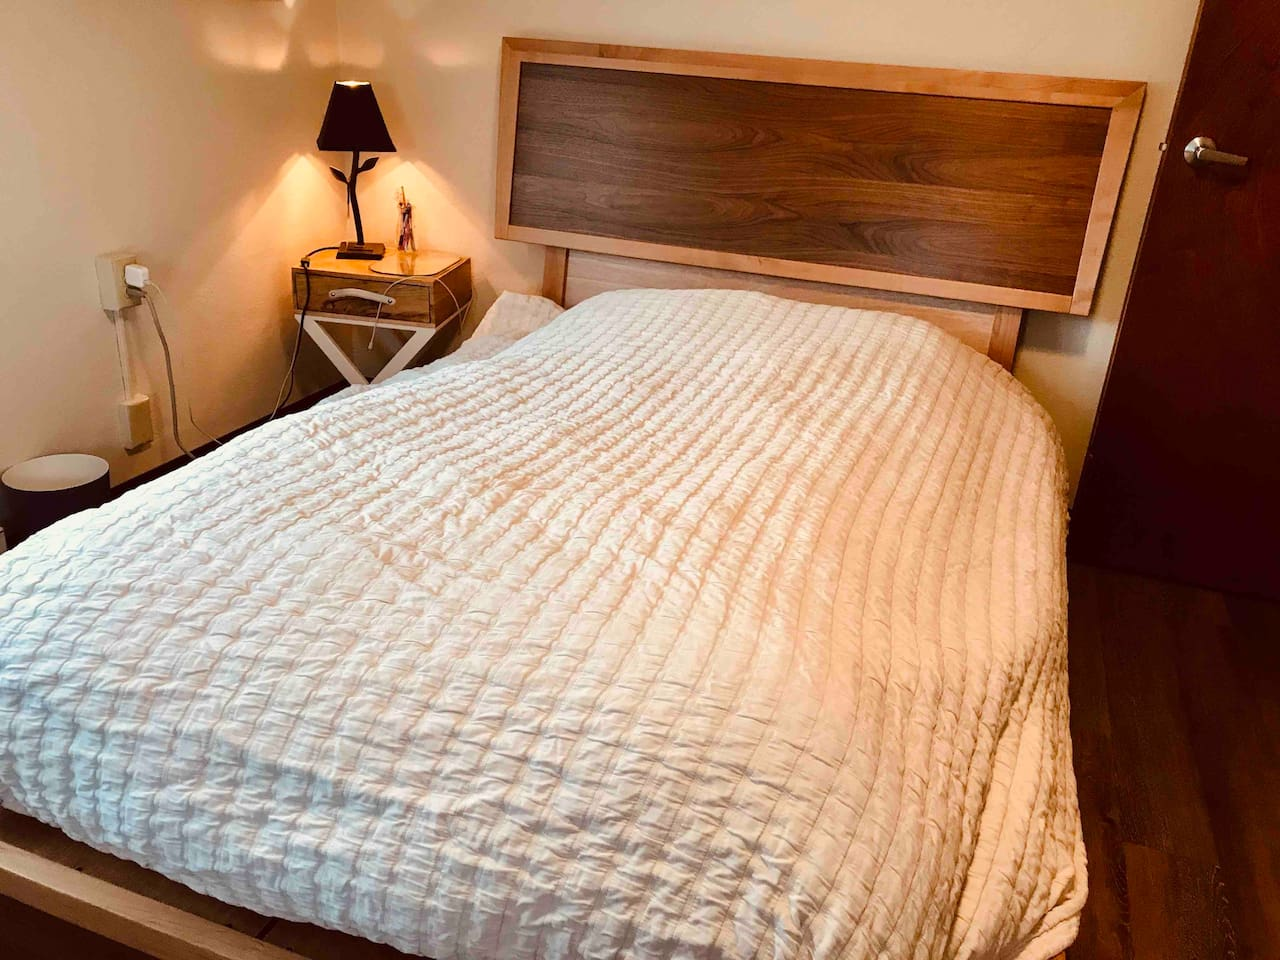 Basic bed is provided. I may have a double or twin bed open. Inform us of  how many in your party.  please provide us the details of plans. likely you will get the whole space provided by Sam as we will stay with a local friend during your visit.